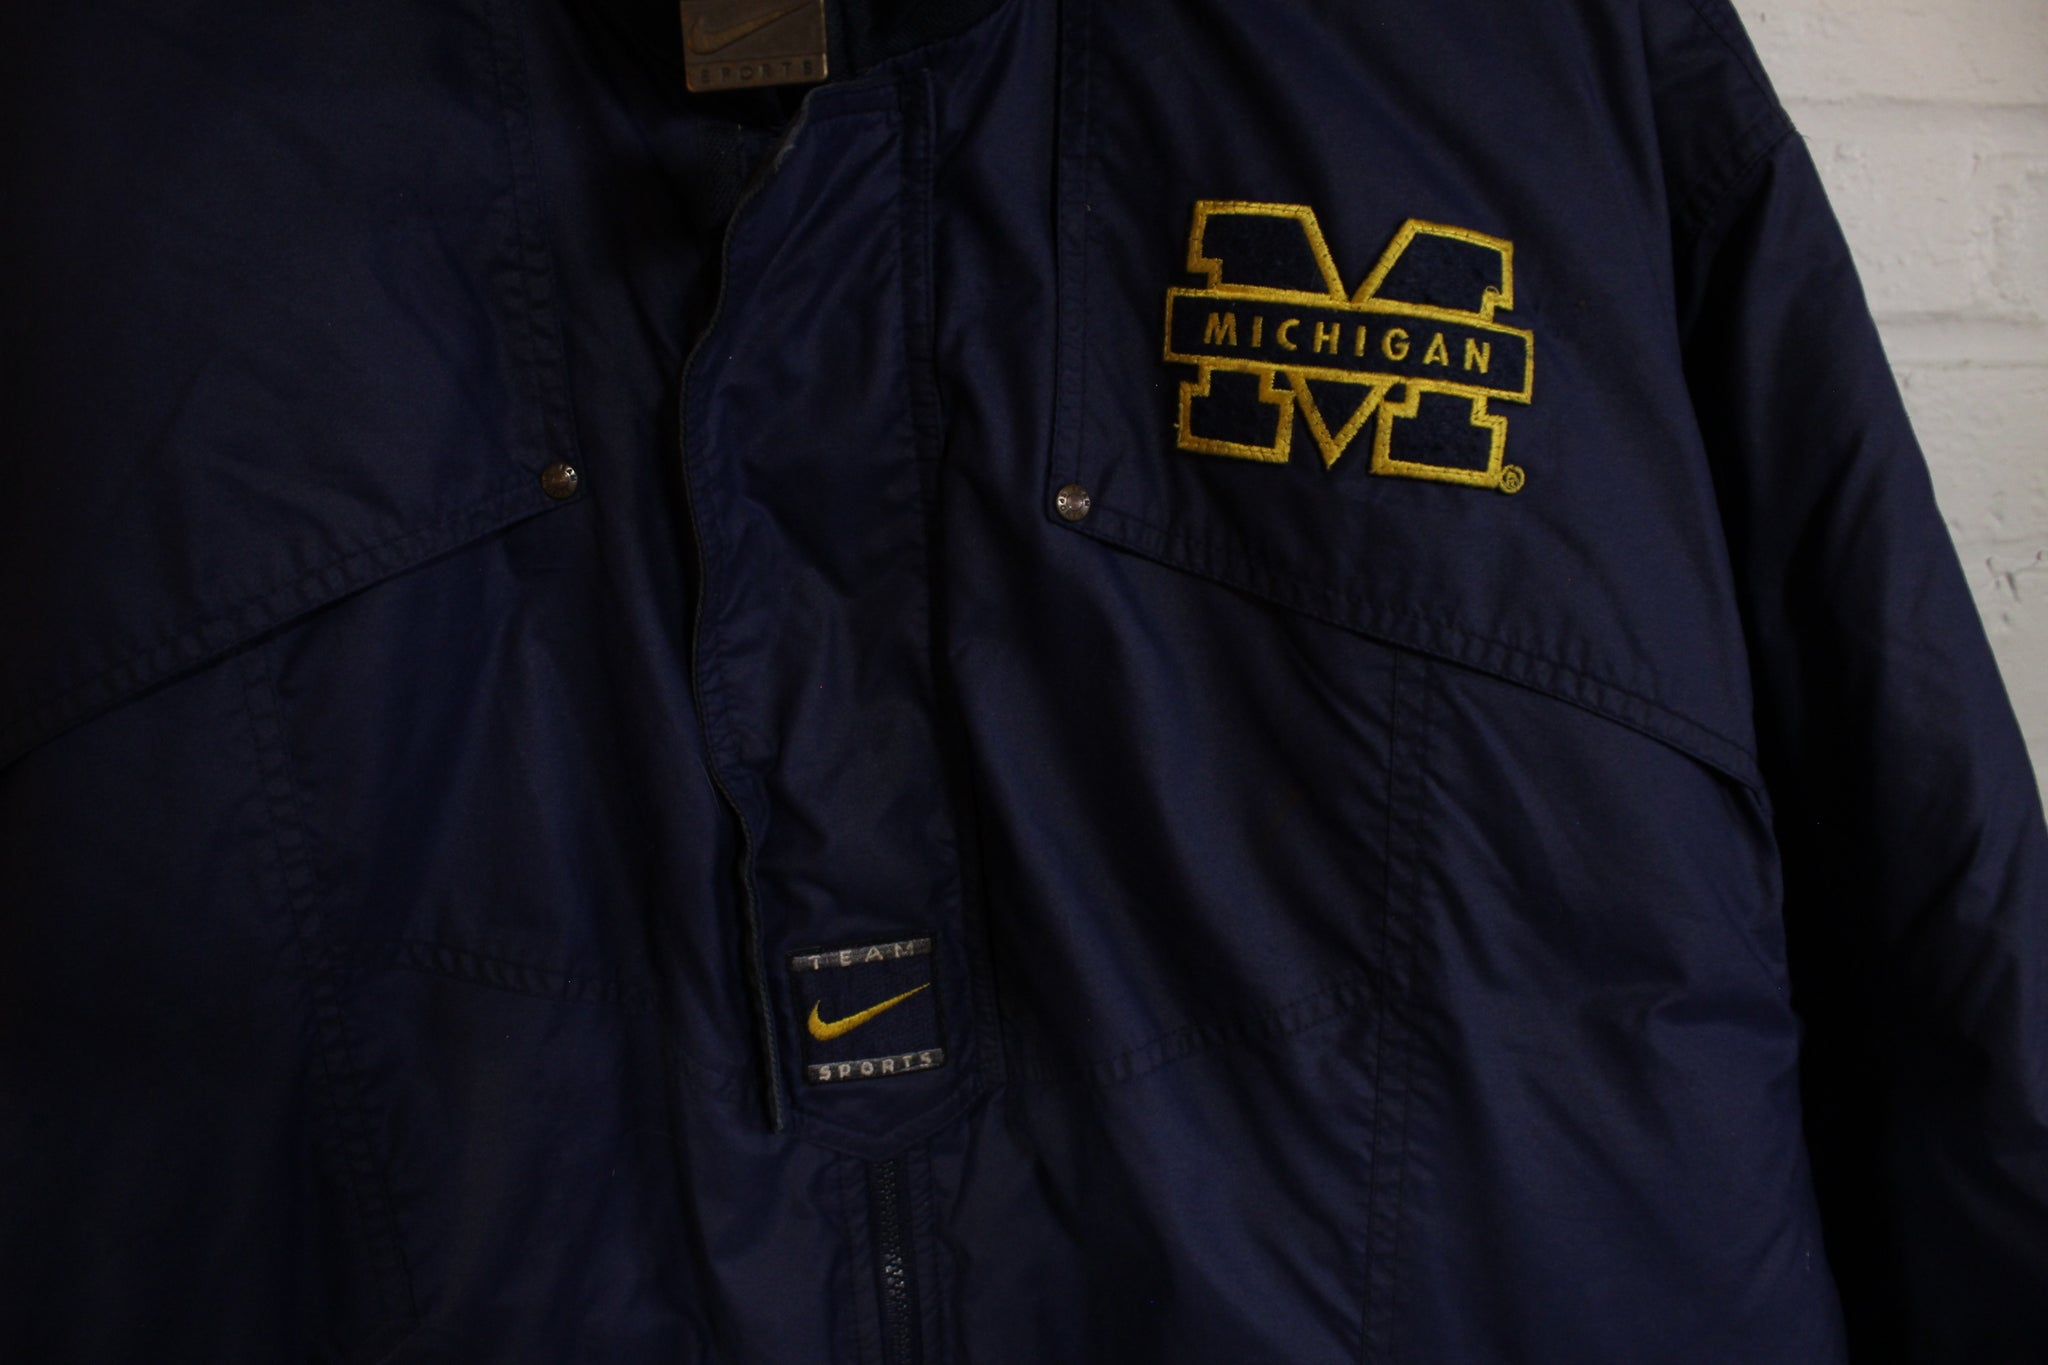 Michigan x Nike Jacket